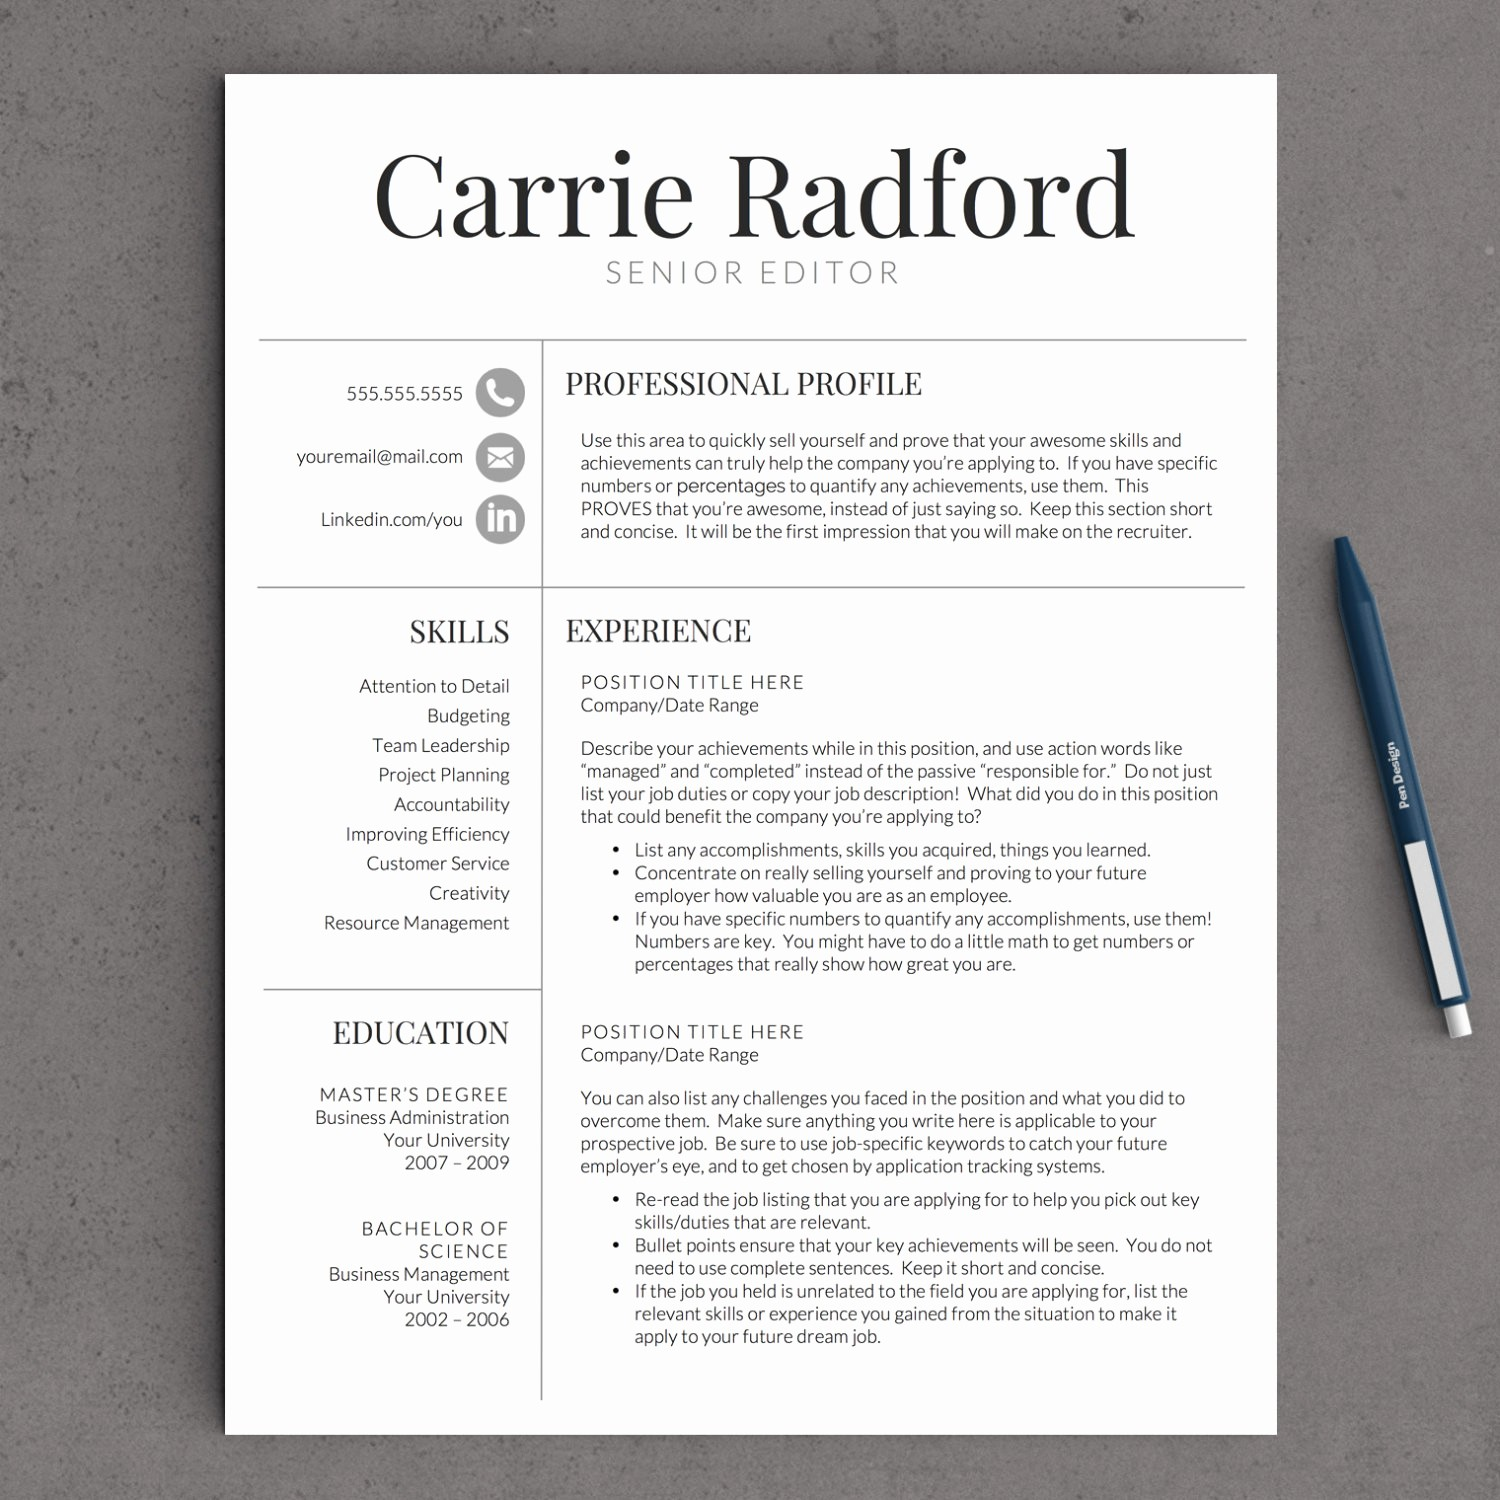 Classic Resume Template Word Download Beautiful Classic Professional Resume Template for by Landeddesignstudio